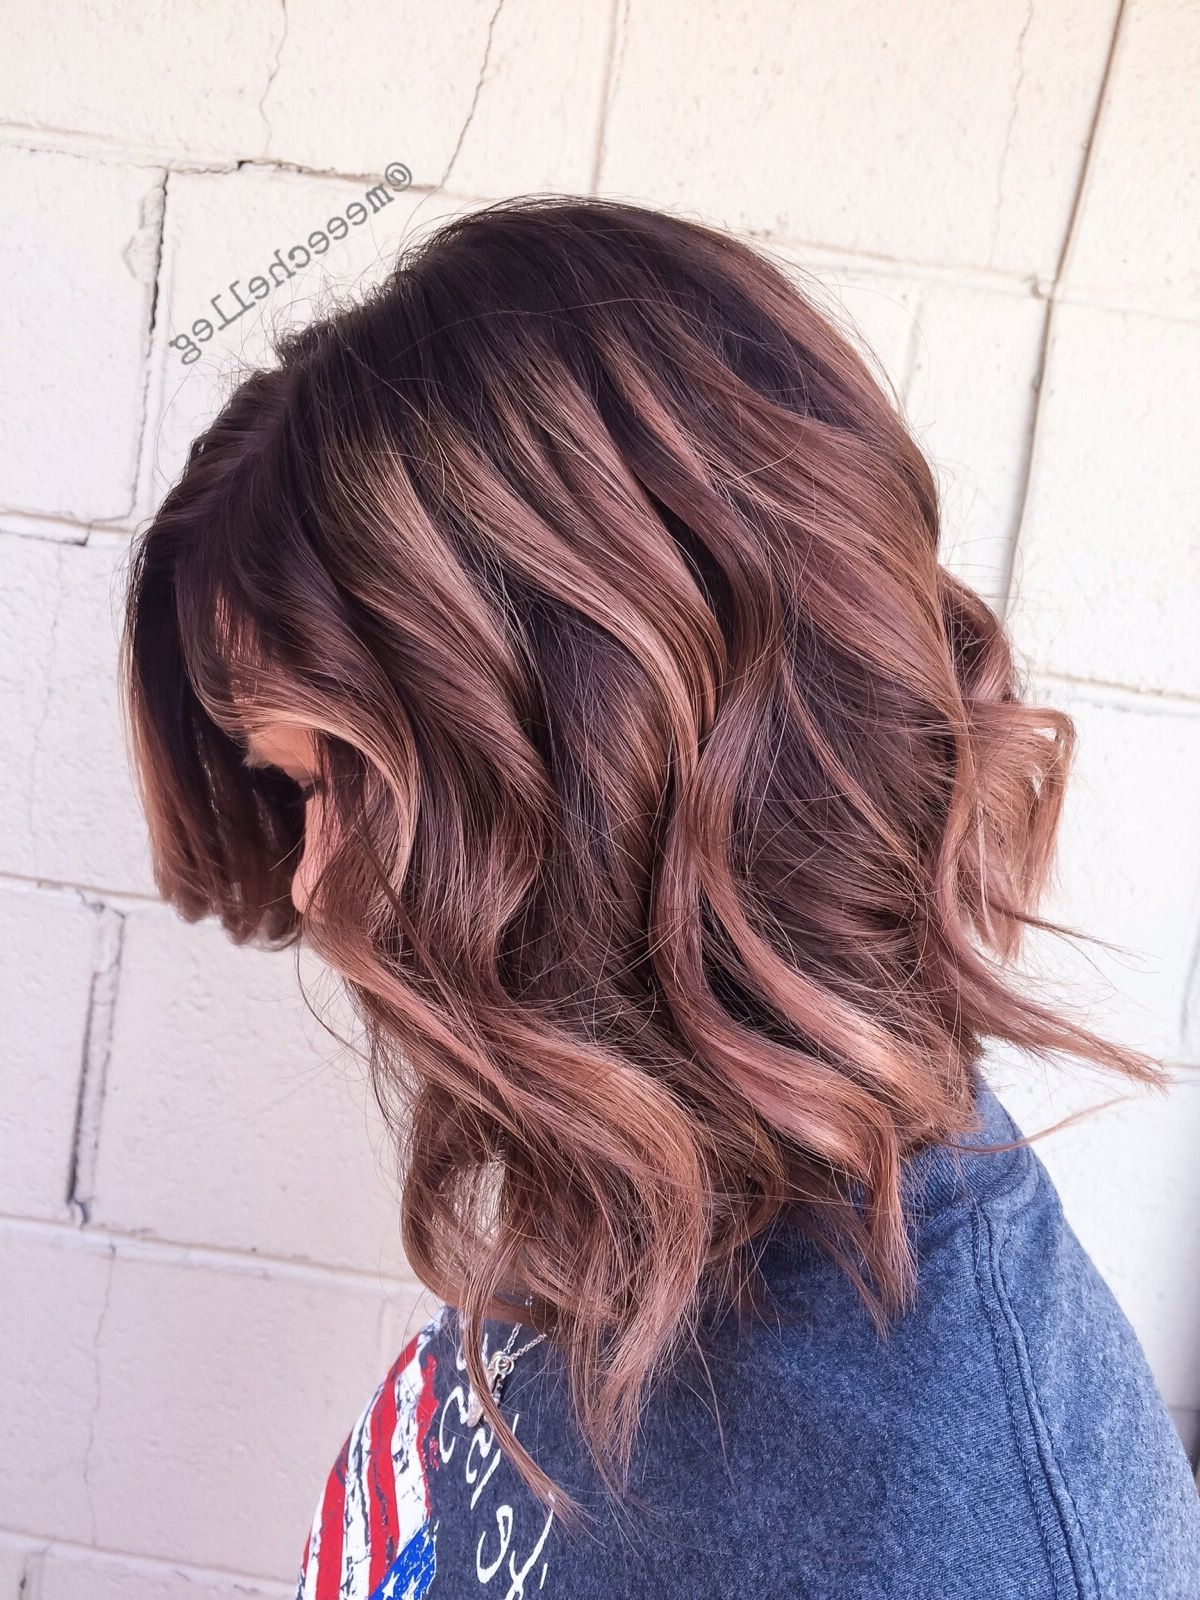 Well Liked Natural Curls Hairstyles With Caramel Highlights Within Lob, Caramel Highlights, Balayage, Cool Brunette, Medium (View 6 of 20)